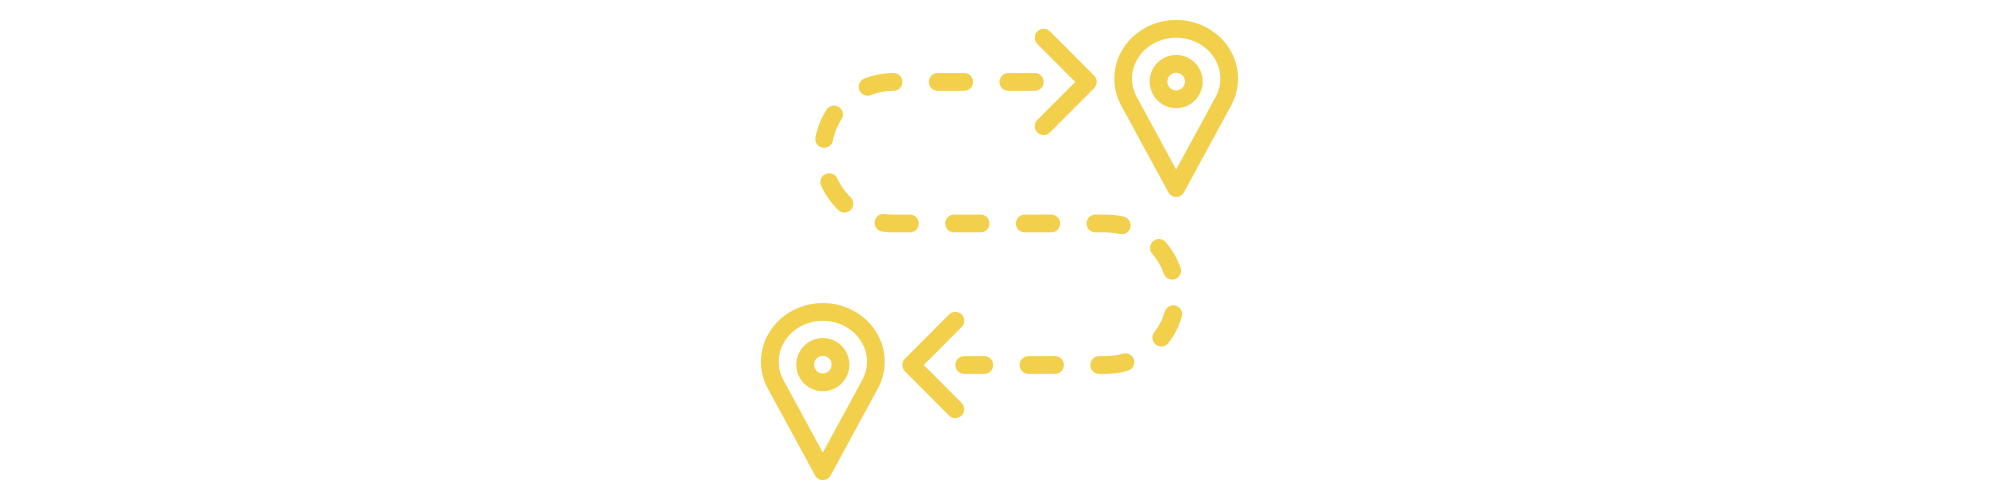 directions-icon.png